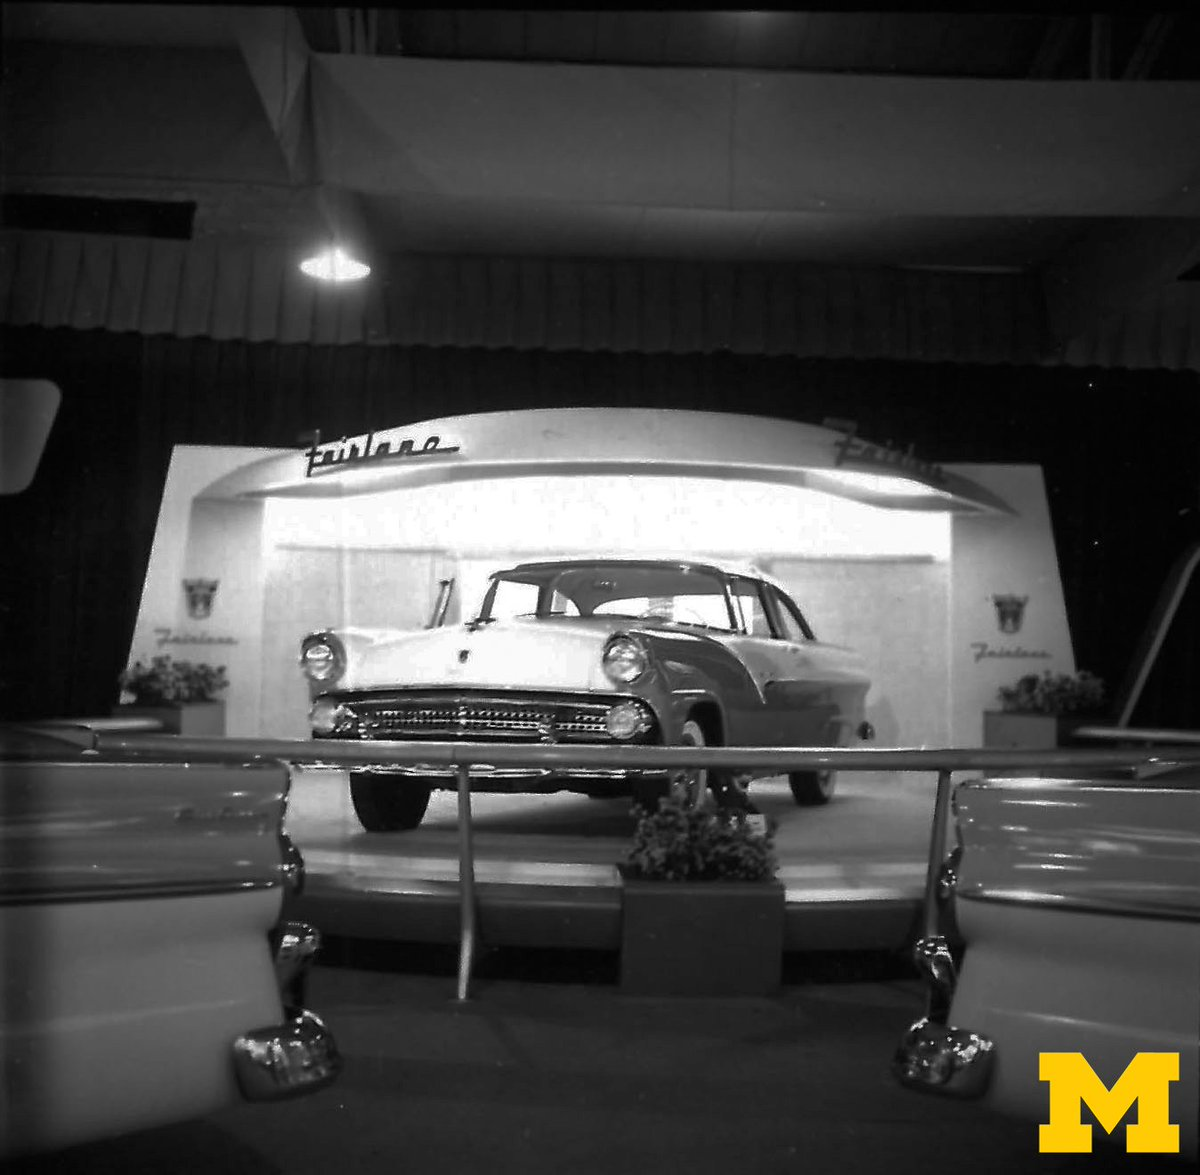 This Ford Fairlane stole the Auto Show in 1955! Do you think it came in maize and blue? #ThrowbackThursday #NAIAS https://t.co/5KY1WRvhqR